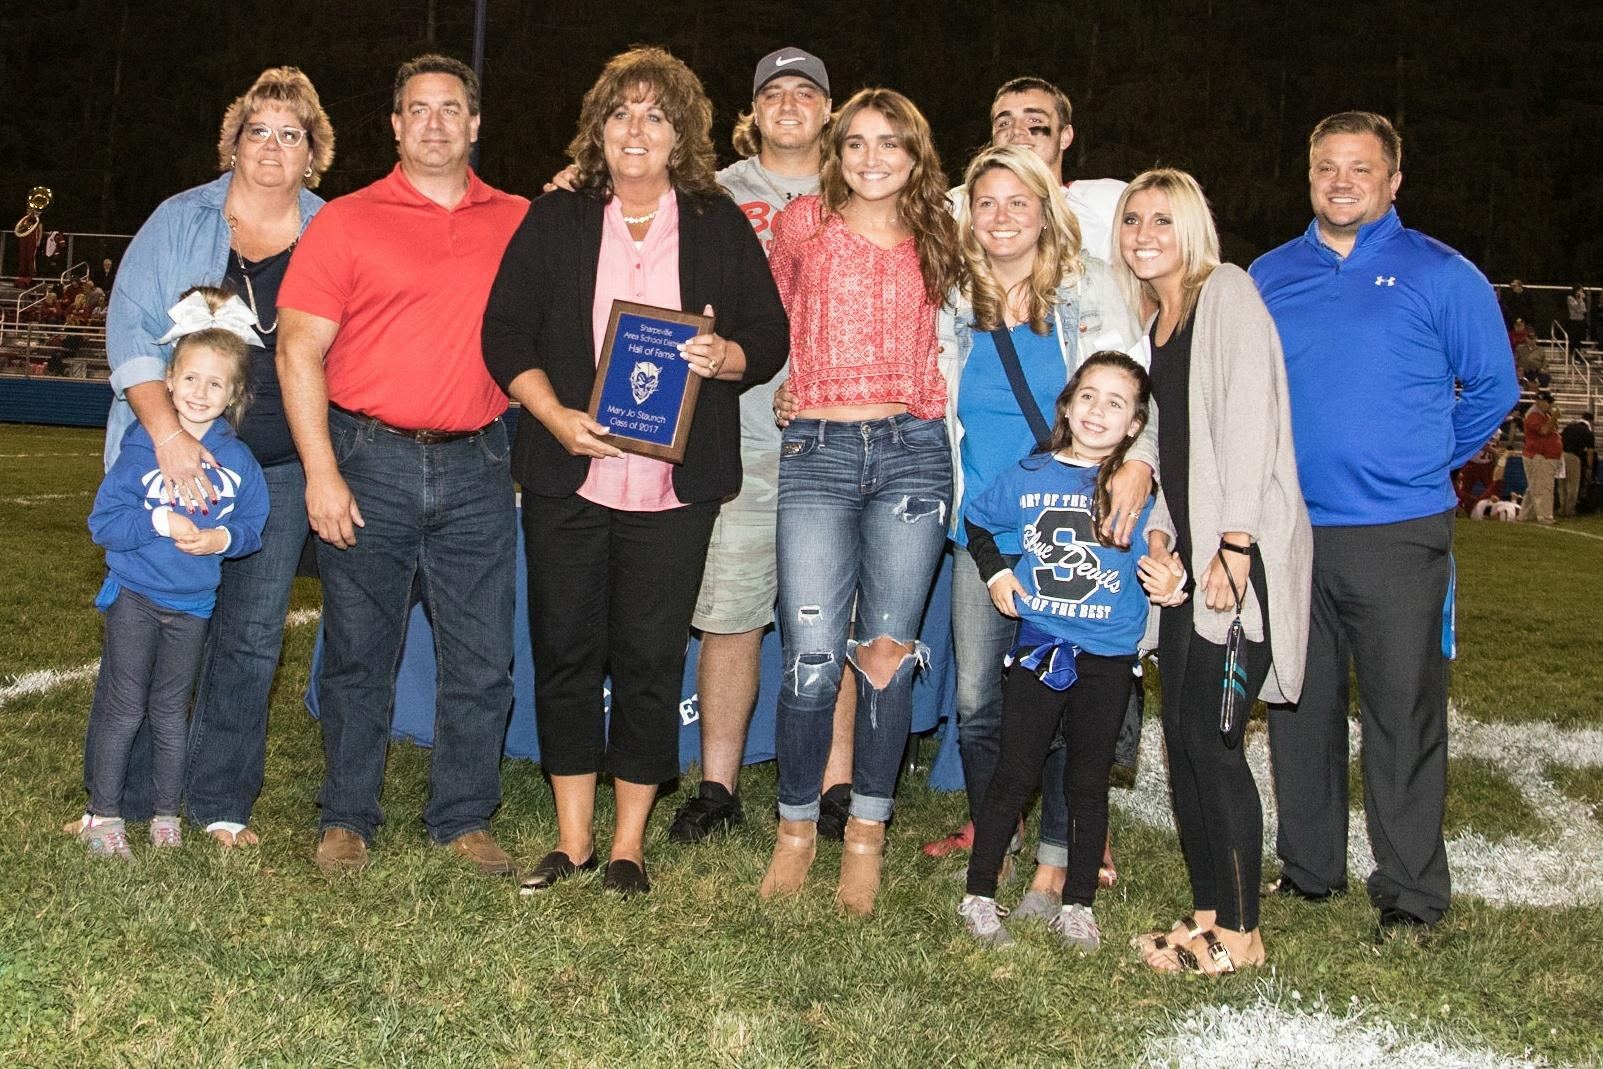 HOF Recipient Mary Jo Staunch and family